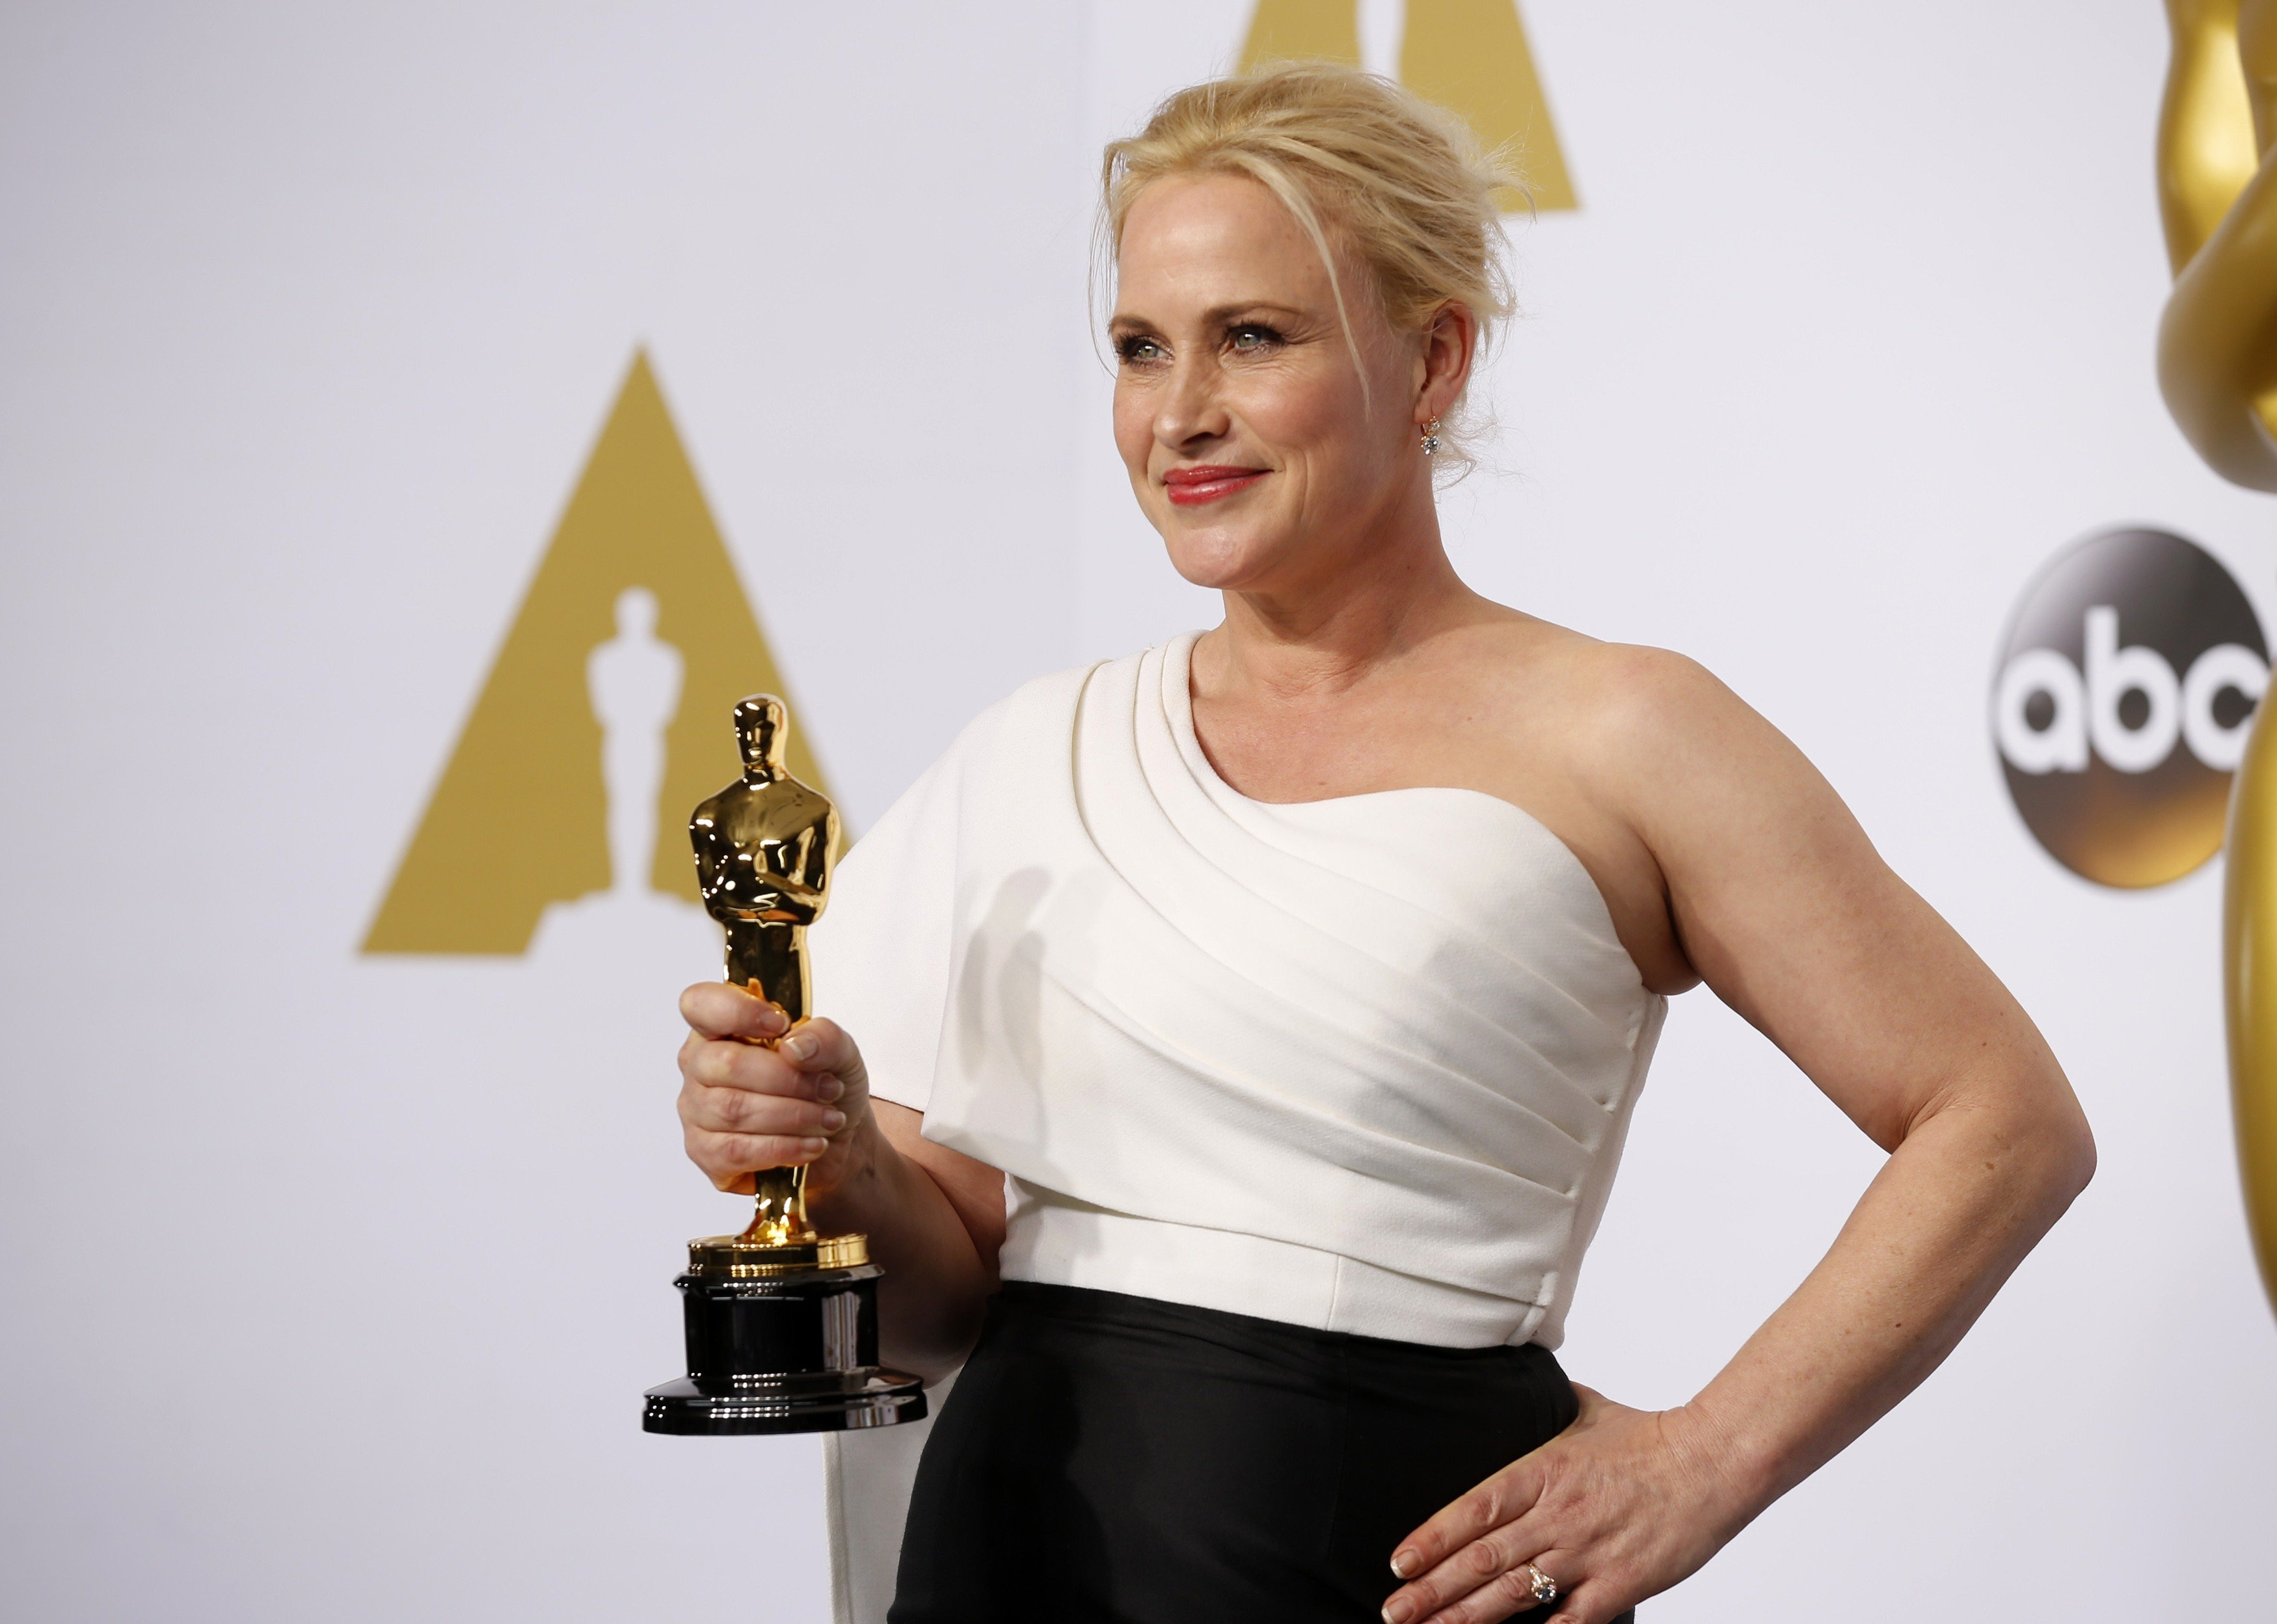 Patricia Arquette, best supporting actress winner for her role in  Boyhood,  poses with her award                      during the 87th Academy Awards in Hollywood on Feb. 22, 2015.